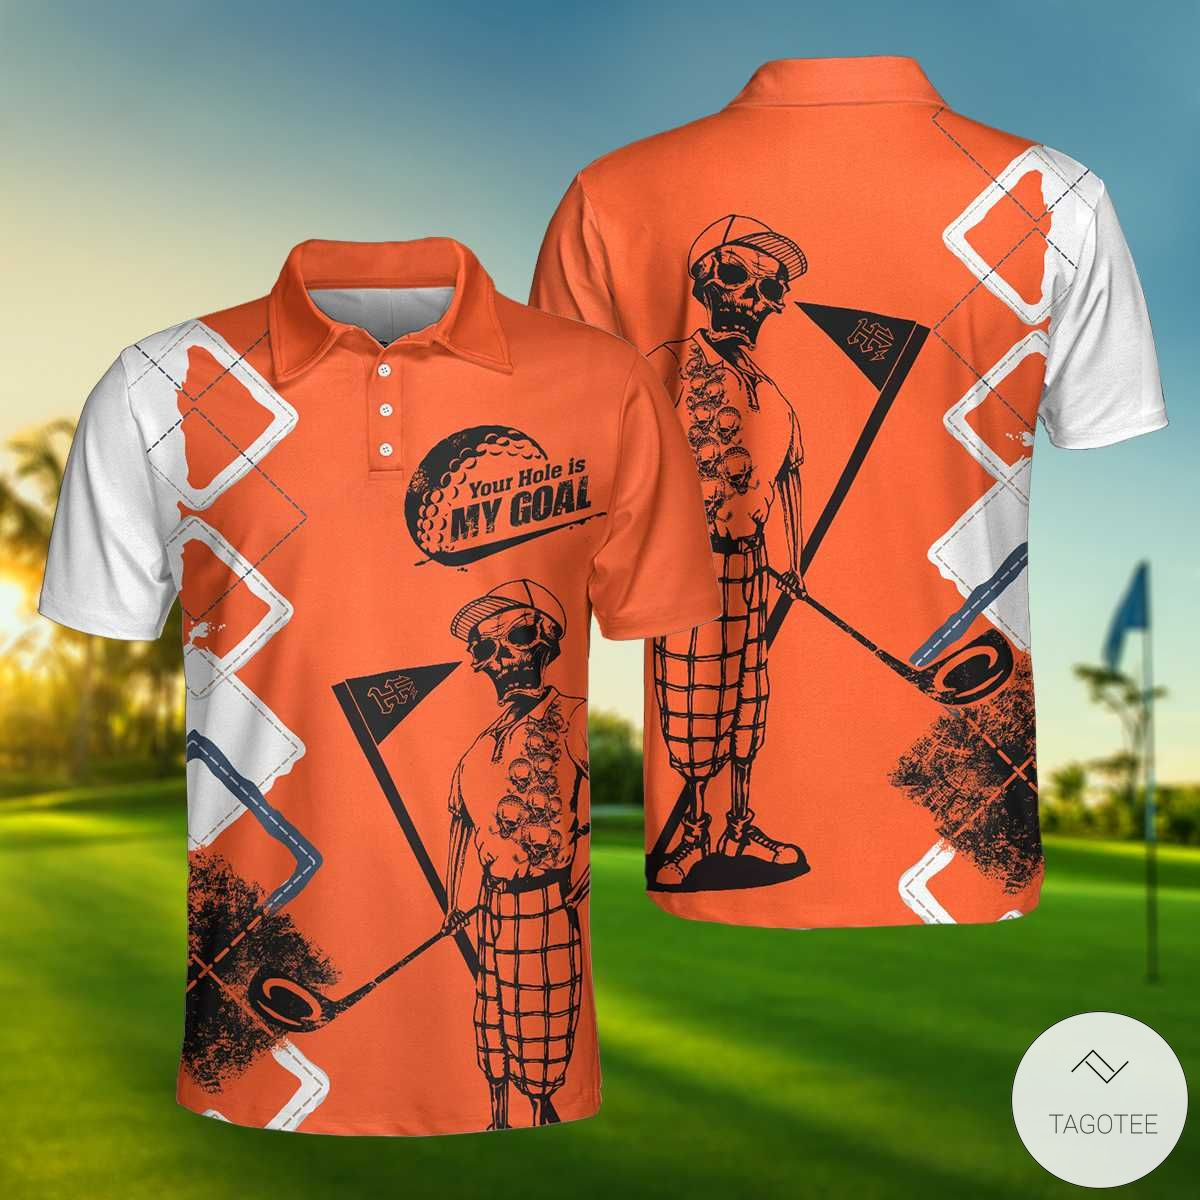 Your Hole Is My Goal Orange Polo Shirtx